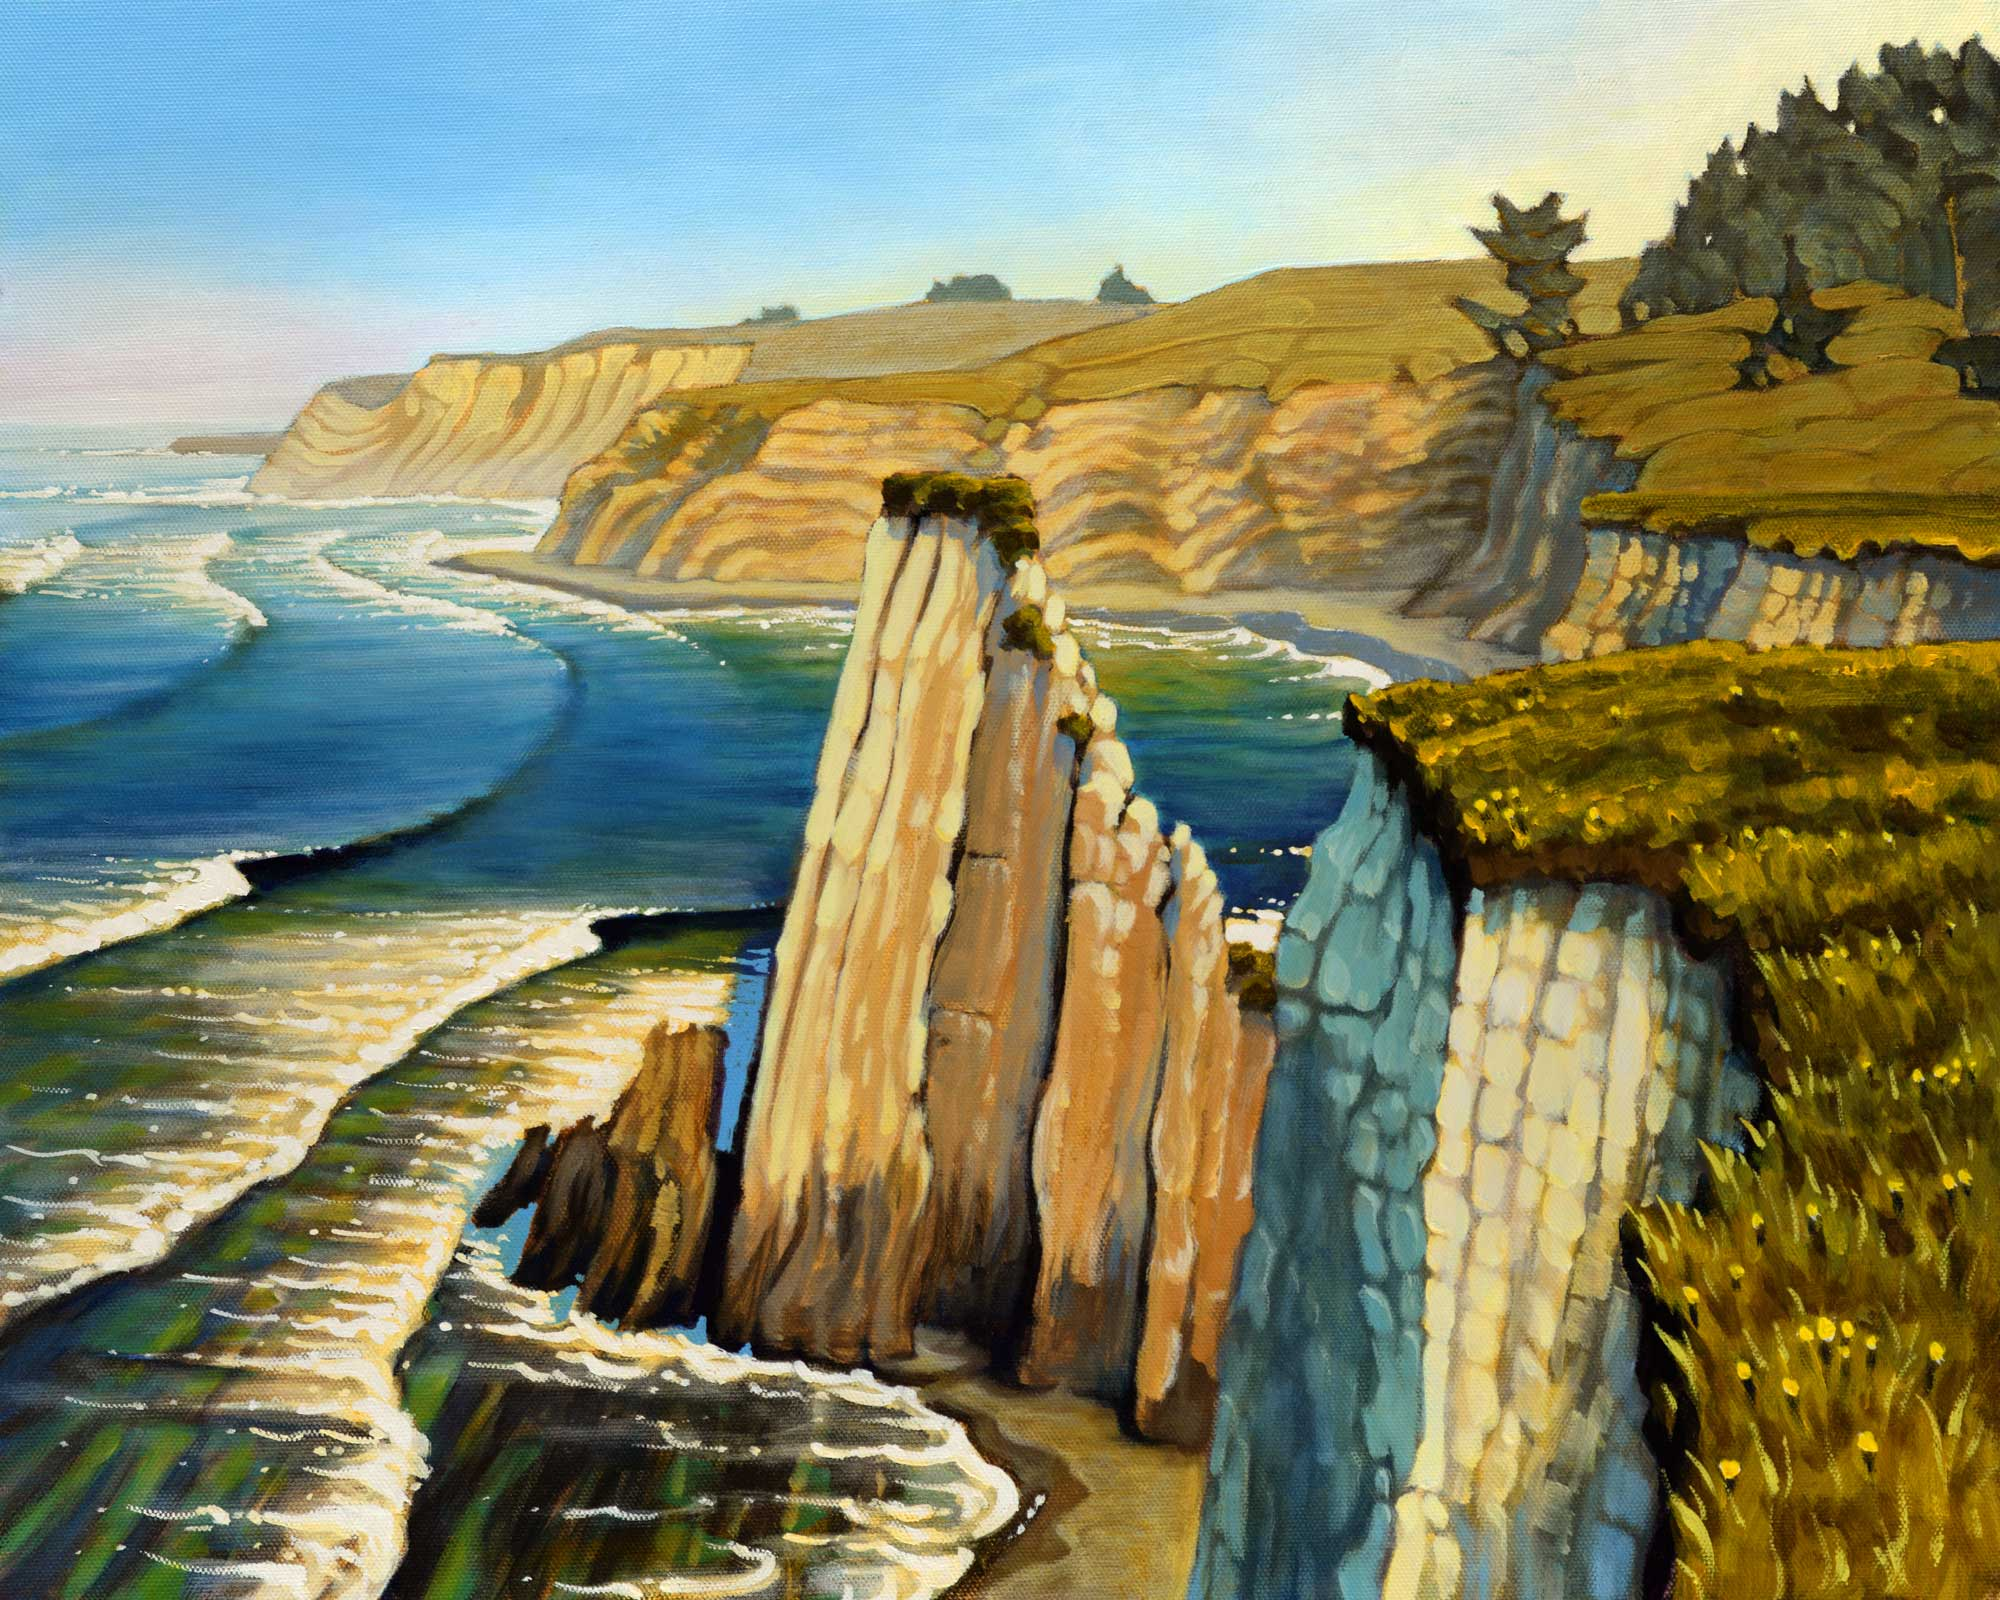 A plein air painting of the steep cliffs of the Pelican Bluffs trail on the Mendocino coast of northern California